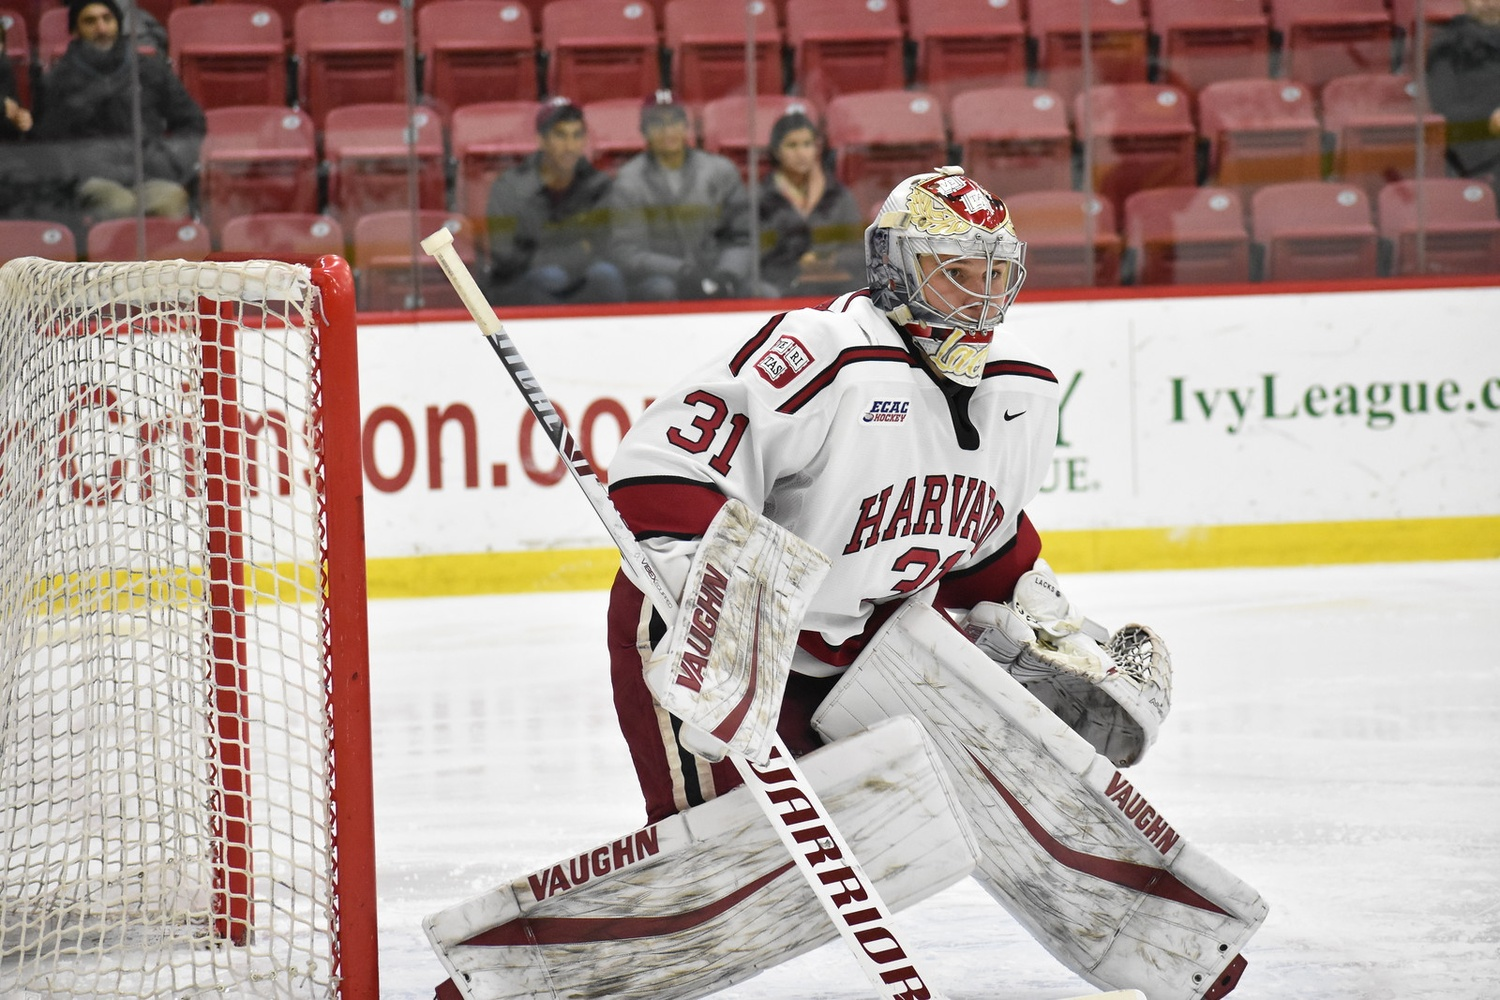 Harvard net-minder Michael Lackey has run away with the starting job after a few lackluster early-season performances, posting very sturdy numbers in his last 13 games.